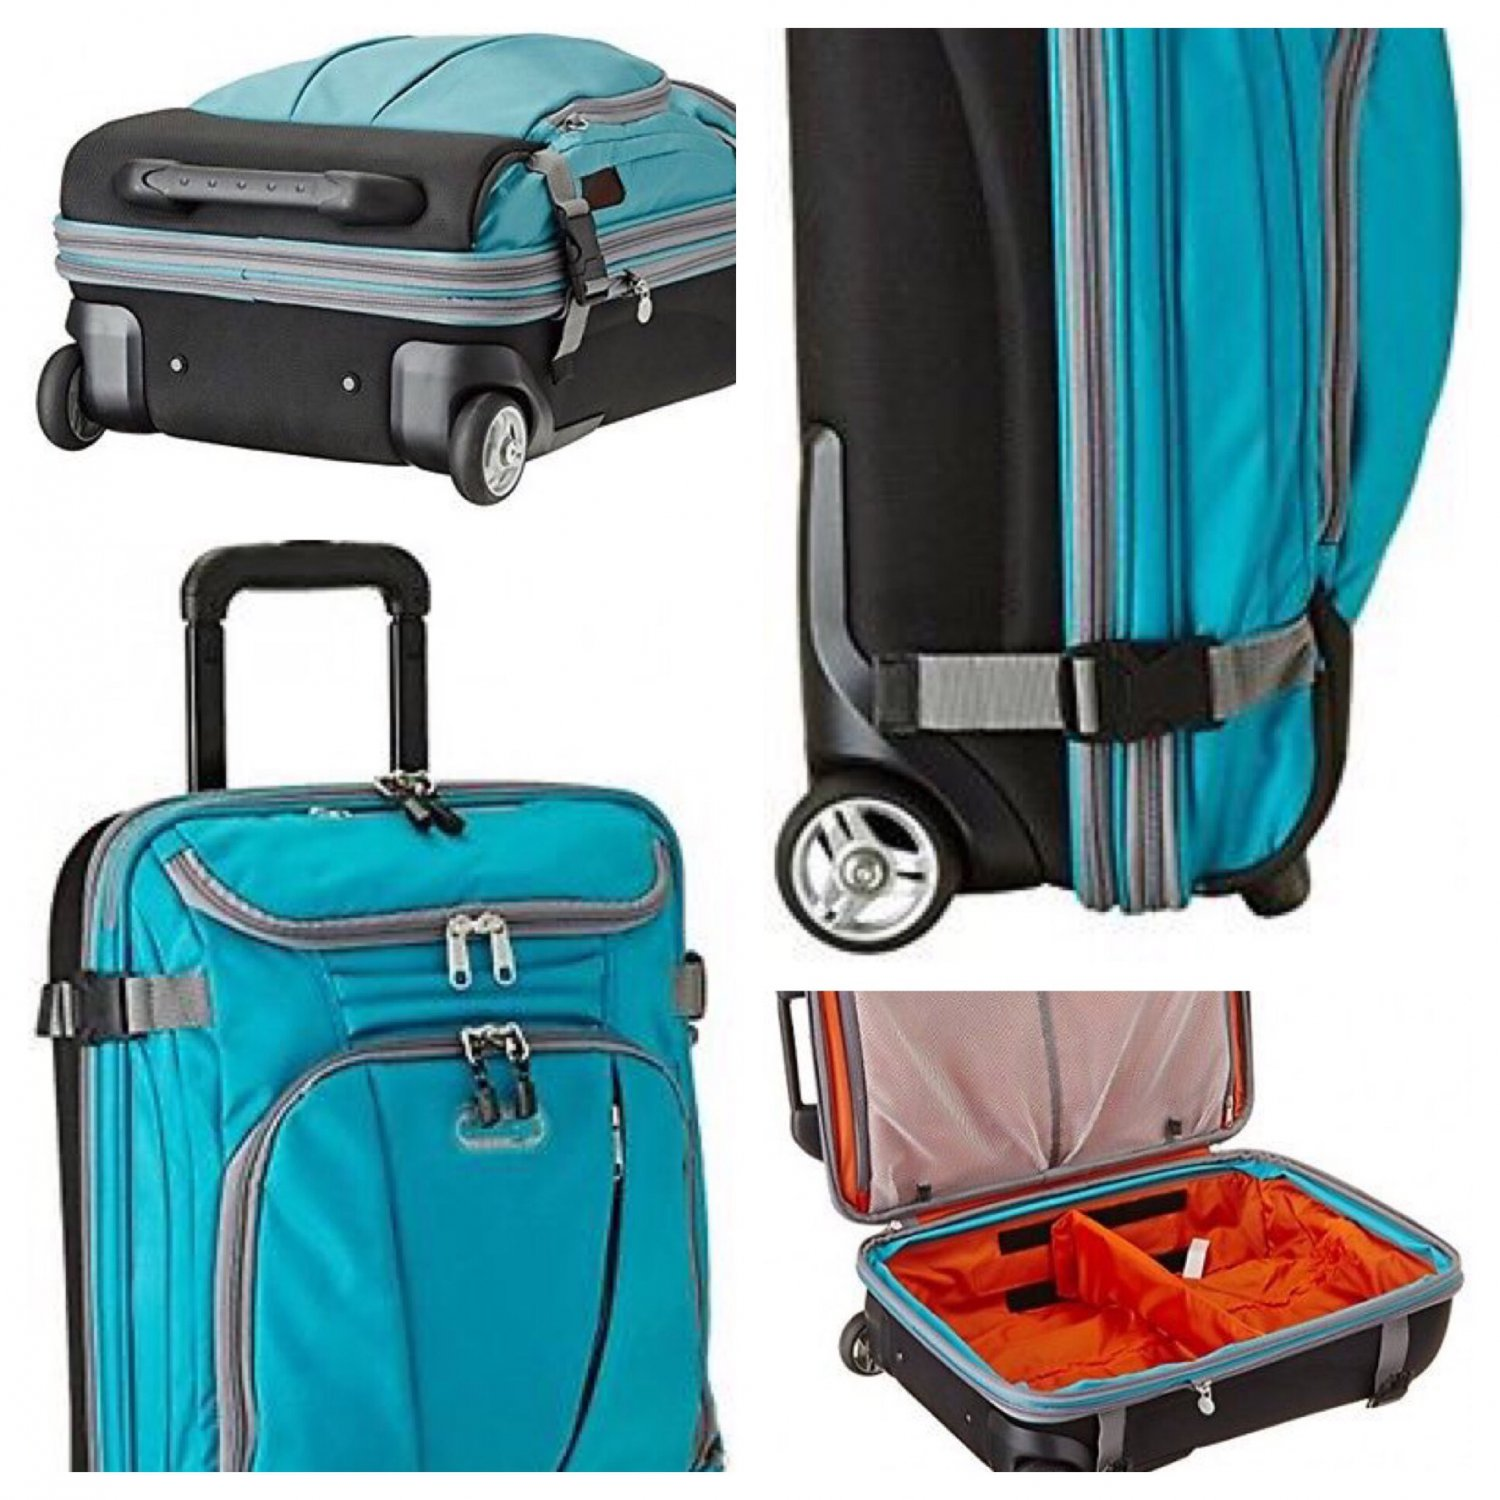 "eBags tls Mother Lode 21"" mini Wheeled Duffel Tropical Turquoise blue rolling luggage carryon"